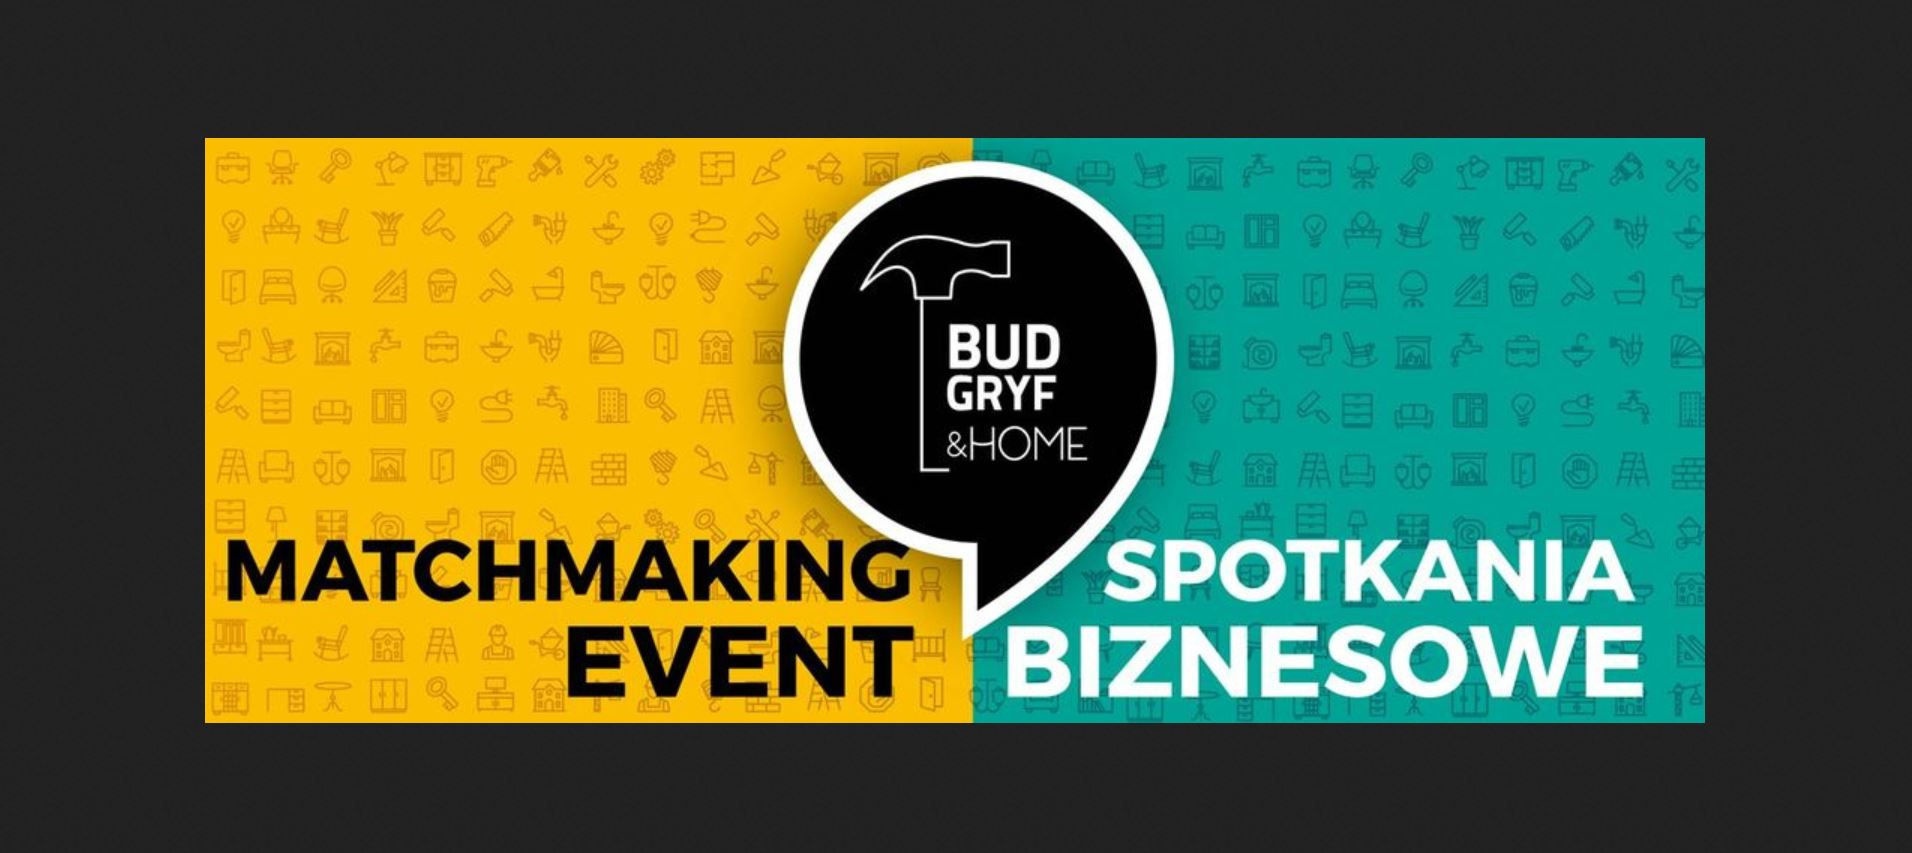 BUD-GRYF & HOME Matchmaking